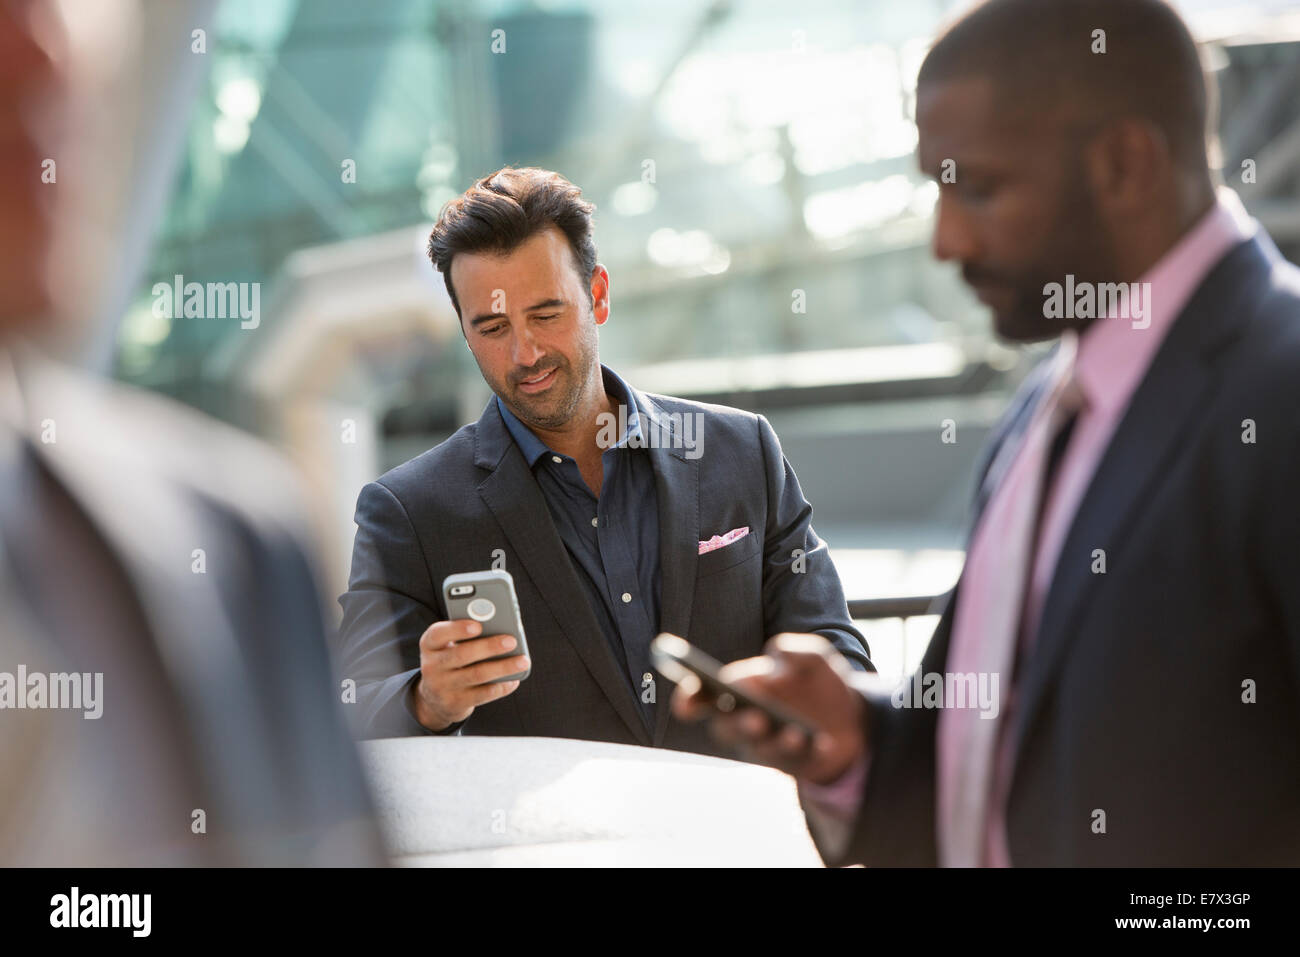 A group of three businessmen, two checking their phones. - Stock Image